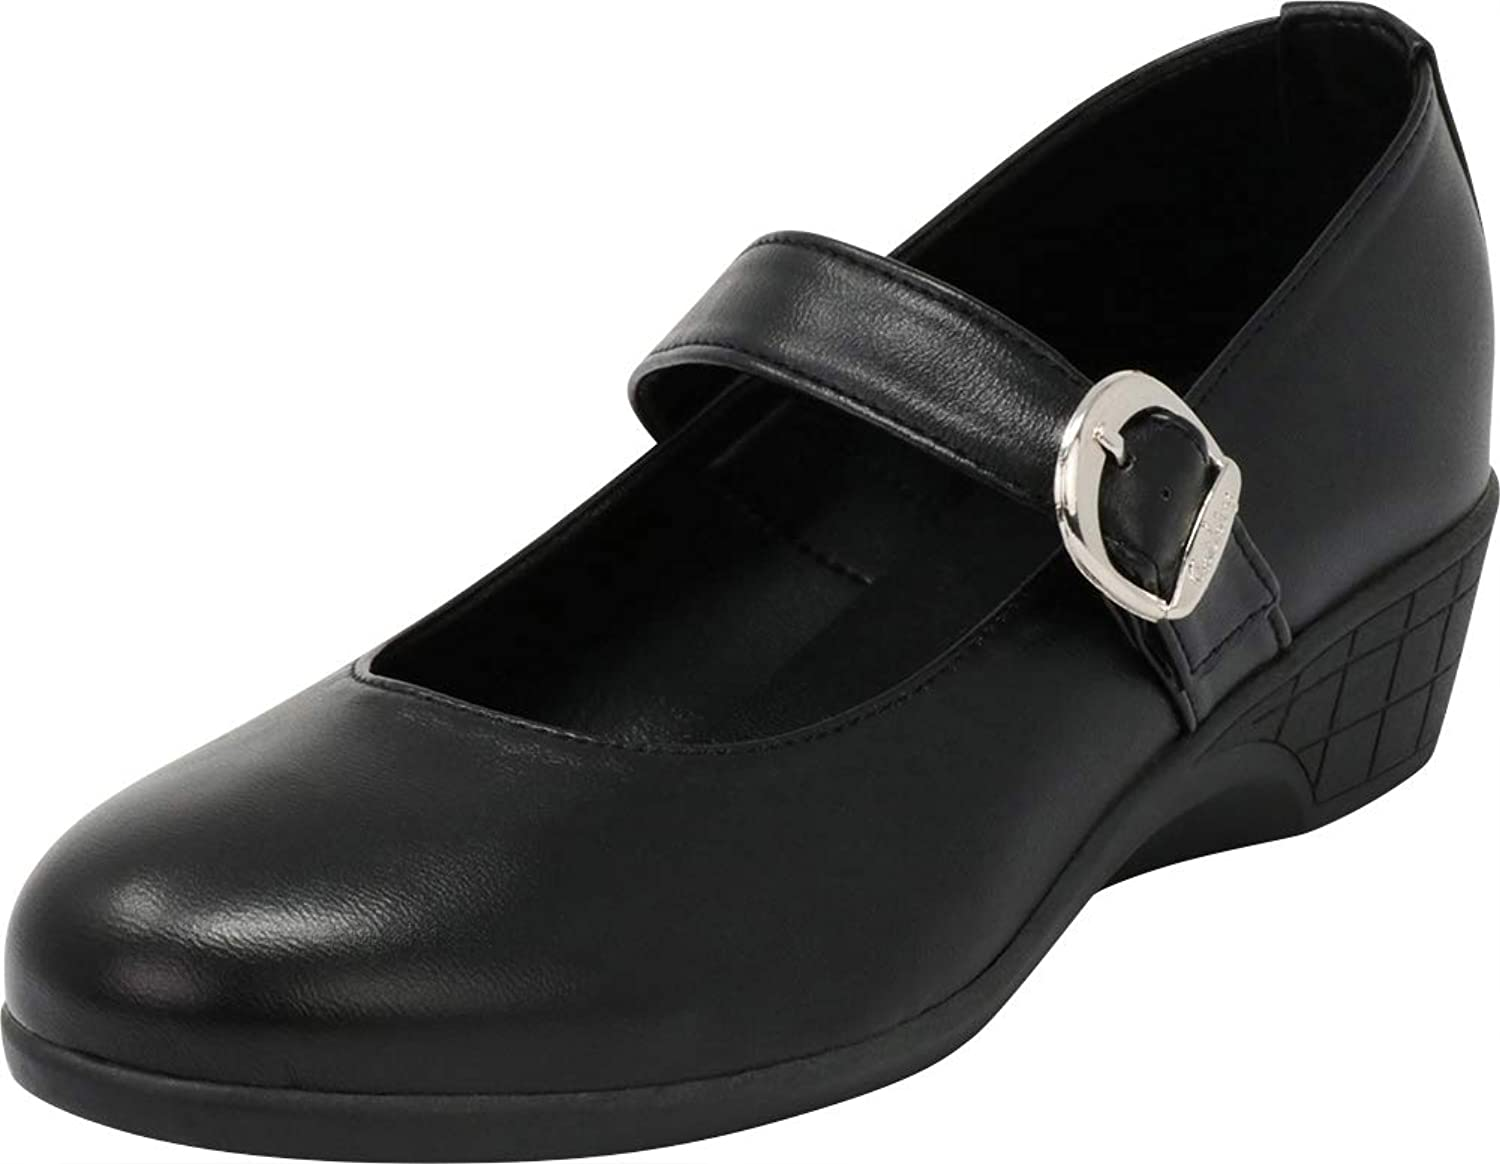 Cambridge Select Women's Closed Round Toe Mary Jane Low Comfort Wedge